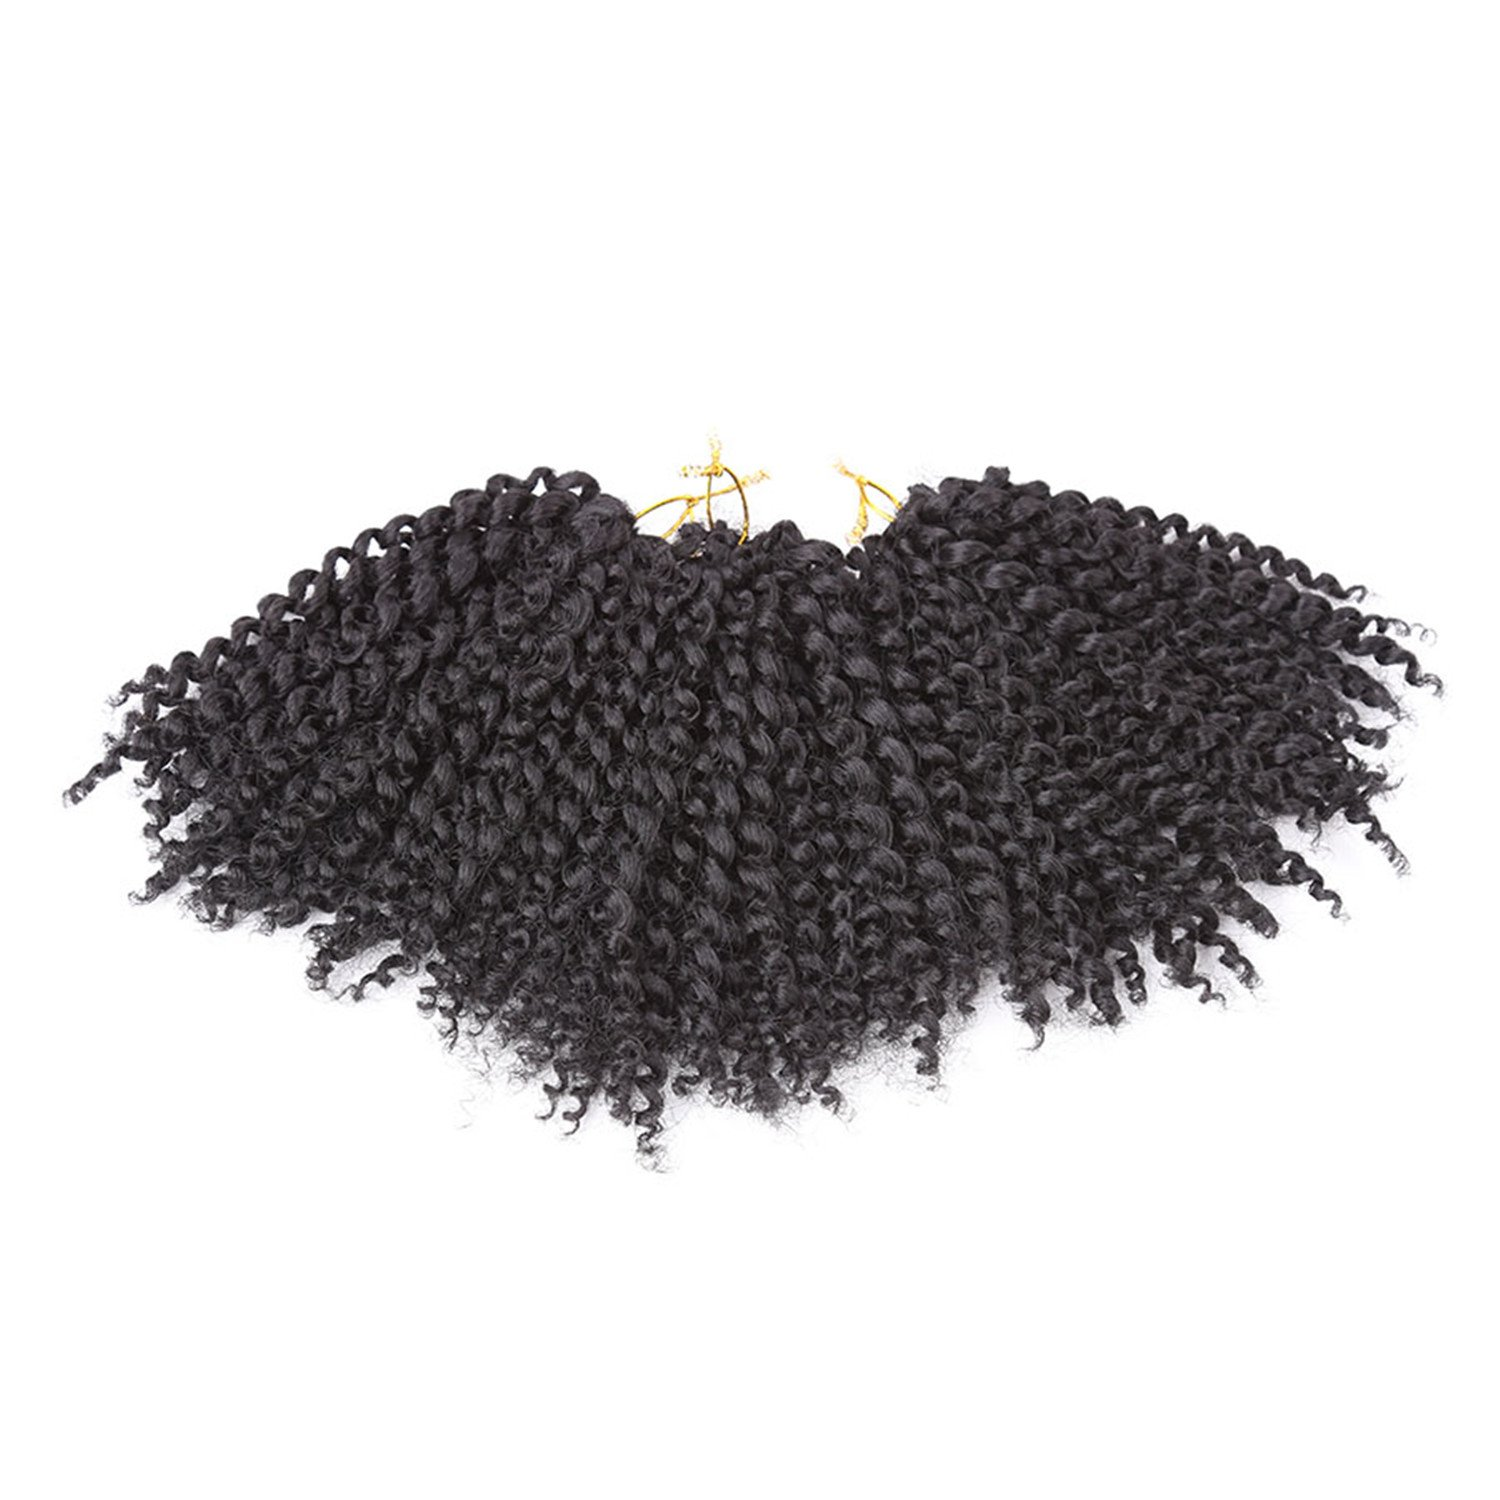 bdc7acf2b6c49 Amazon.com   StrongBeauty 3 Pack Afro American Pretwisted Braids Hair  Extensions Wig For Black Women (1B)   Beauty